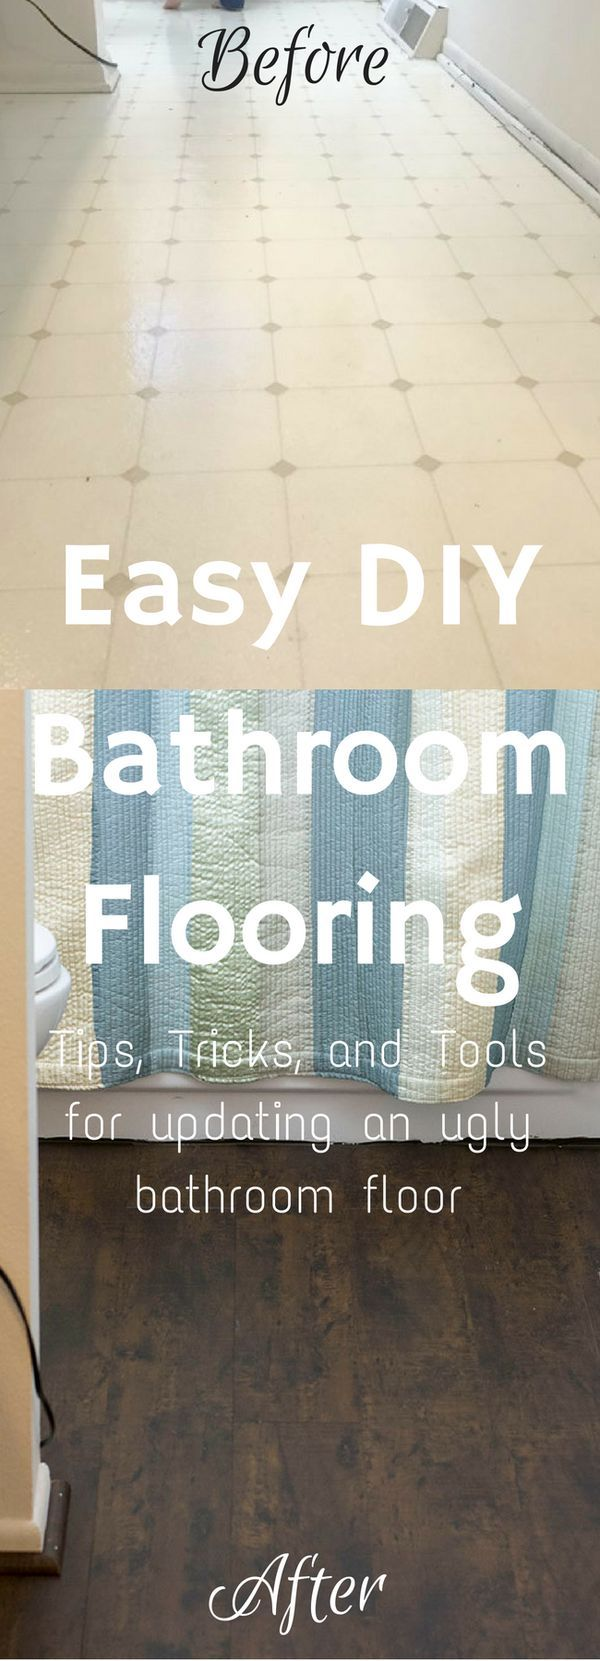 easy diy bathroom flooring renovation